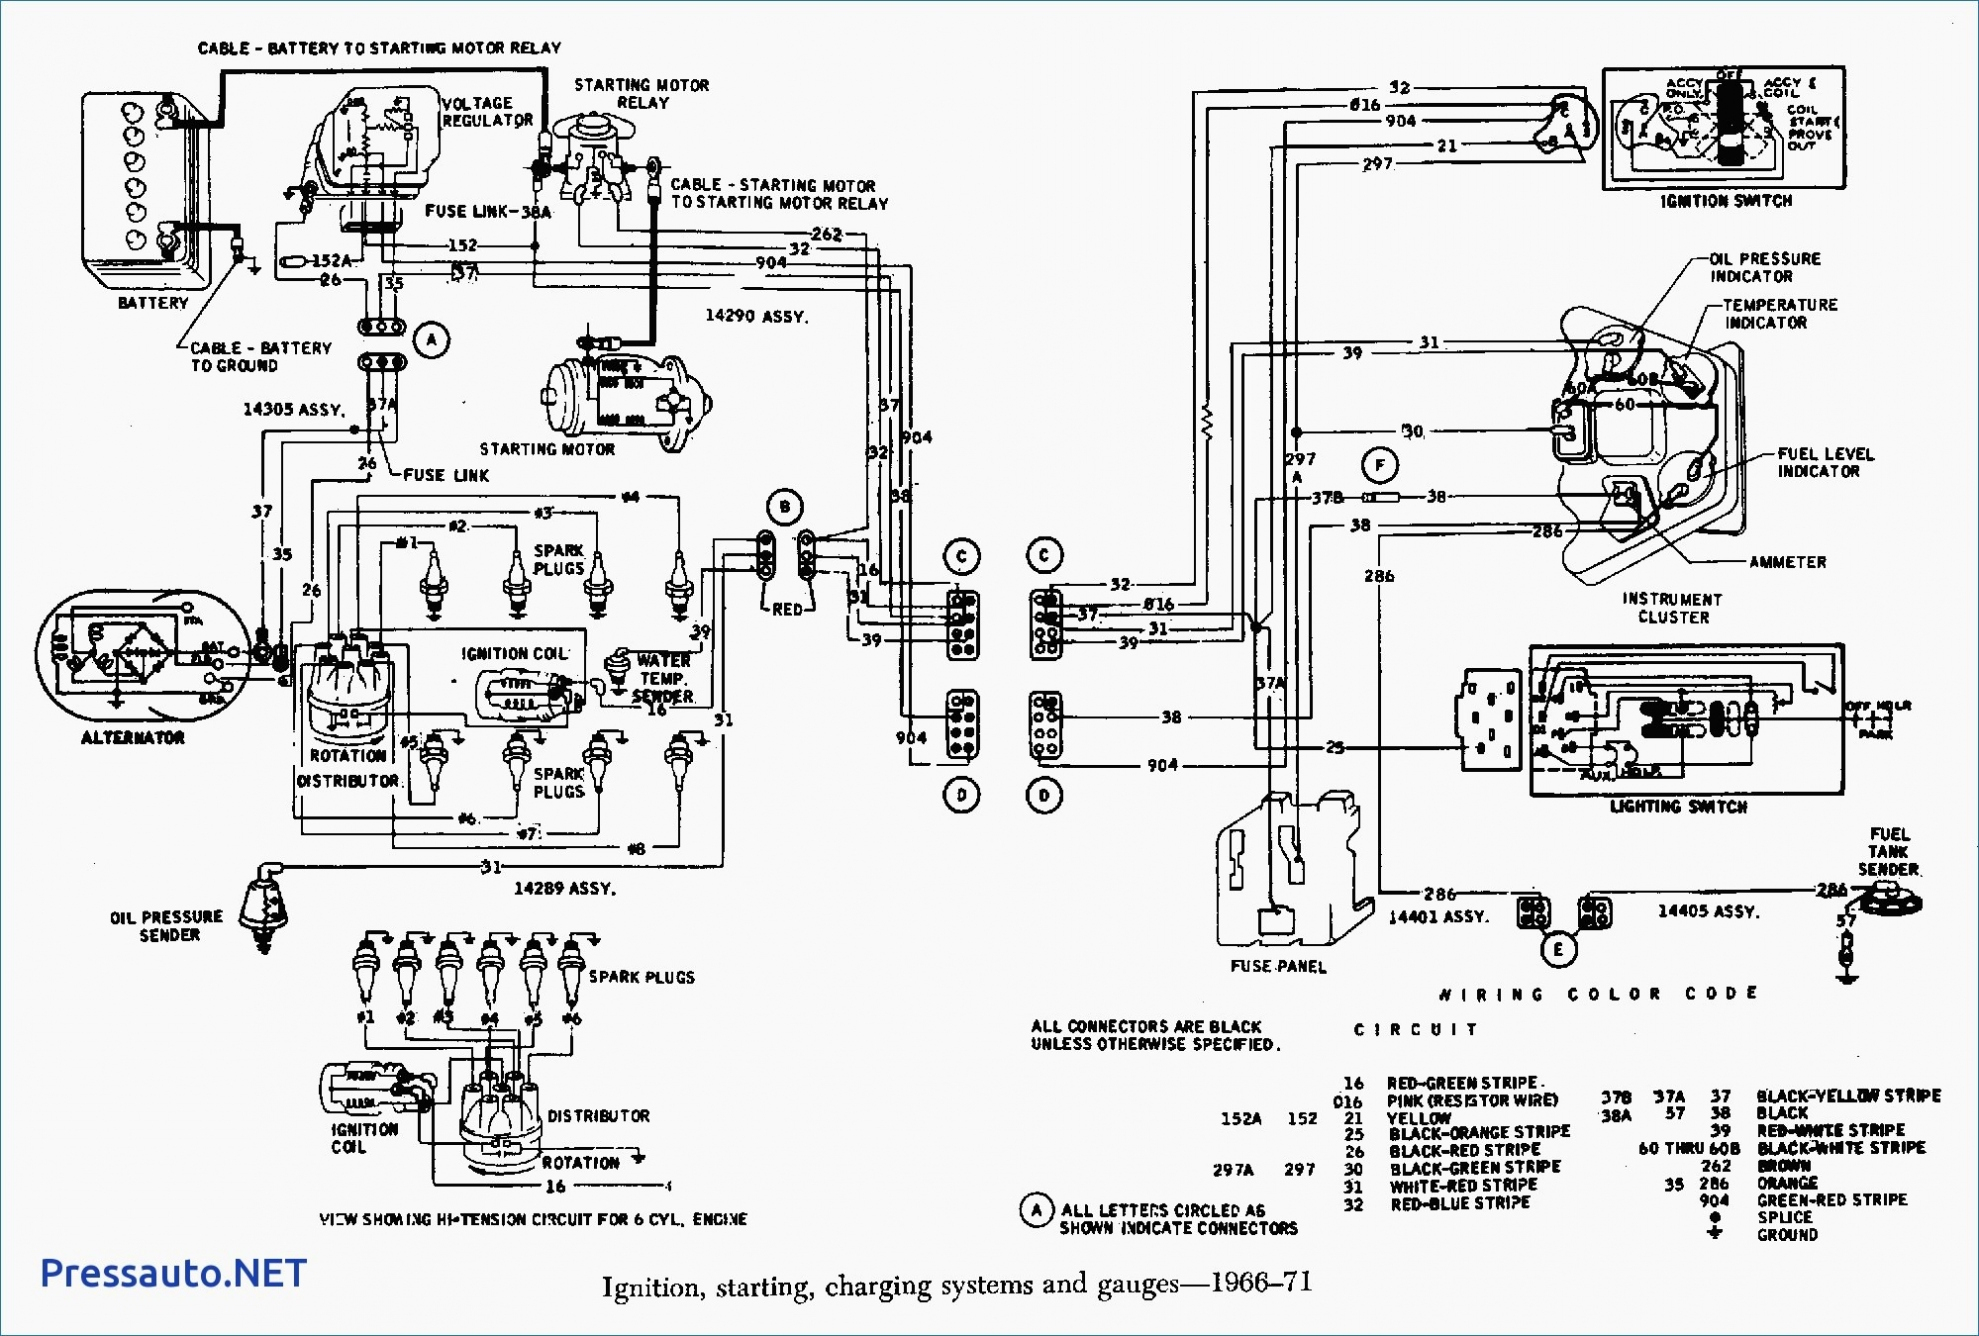 Wiring Diagram Chevy 350 Distributor Cap Webtor Me And To In Wiring - Chevy 350 Wiring Diagram To Distributor